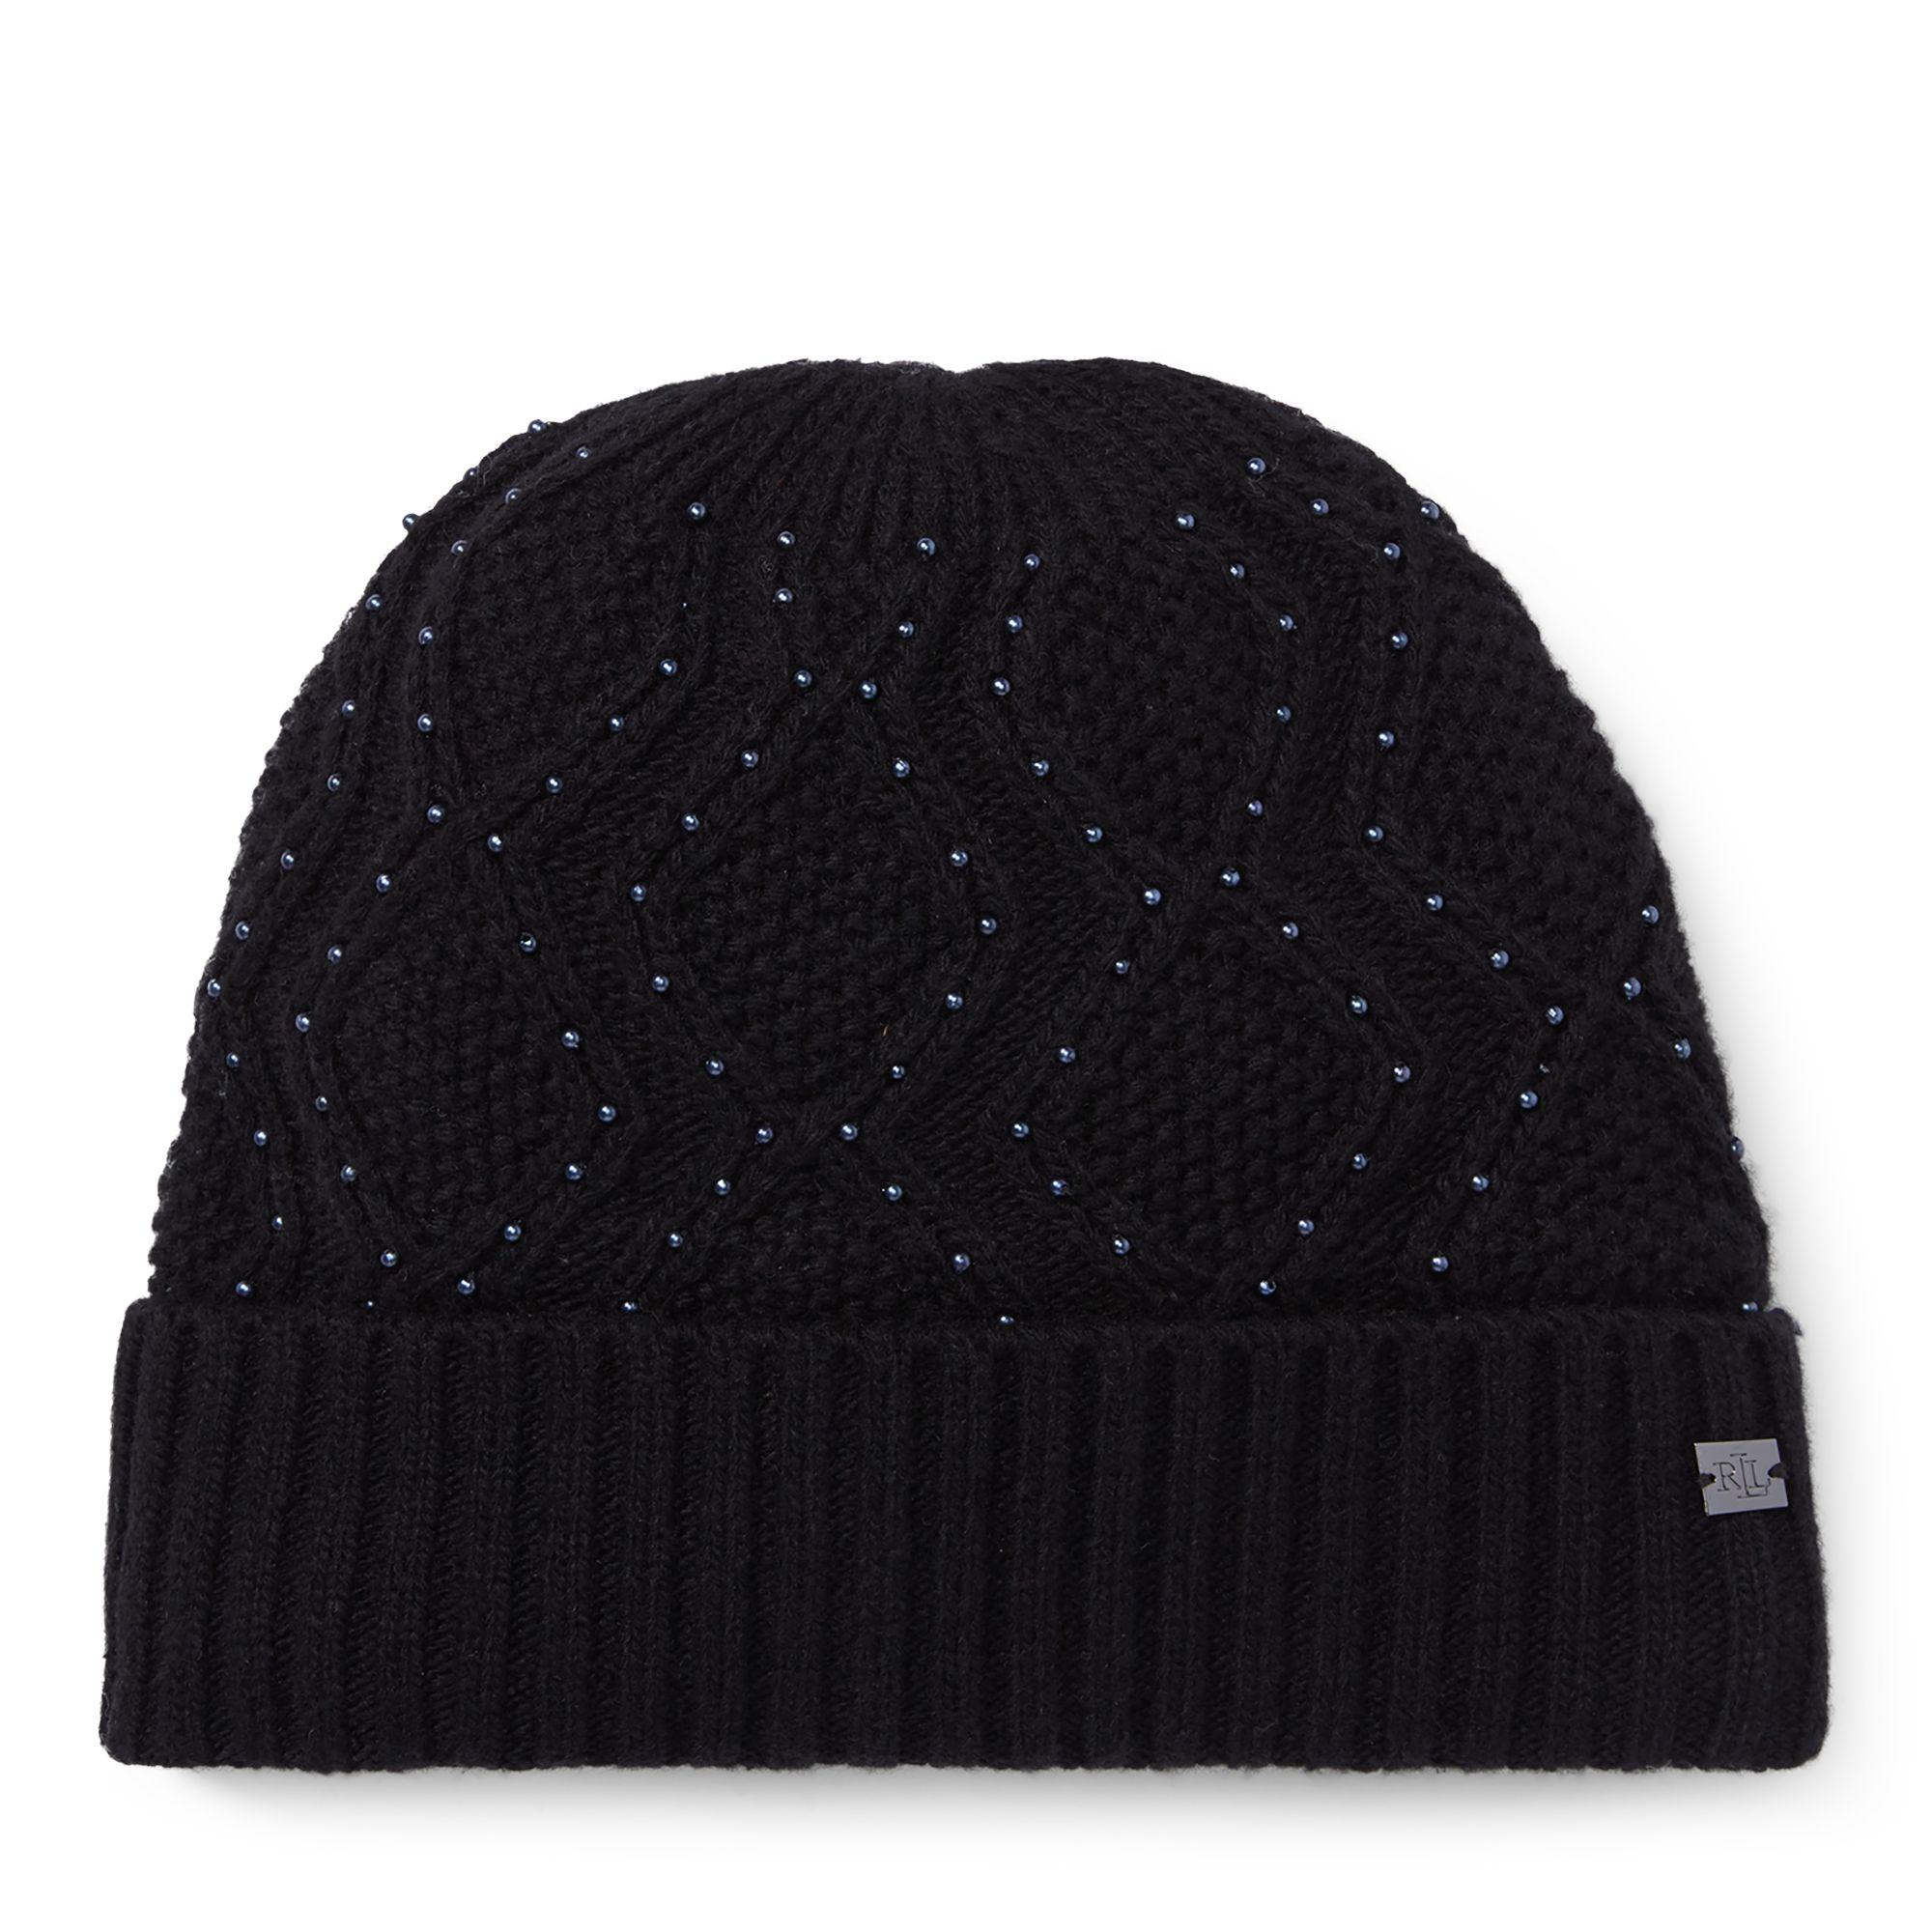 78cff2850 Ralph Lauren Cable-knit Beaded Hat in Black - Lyst